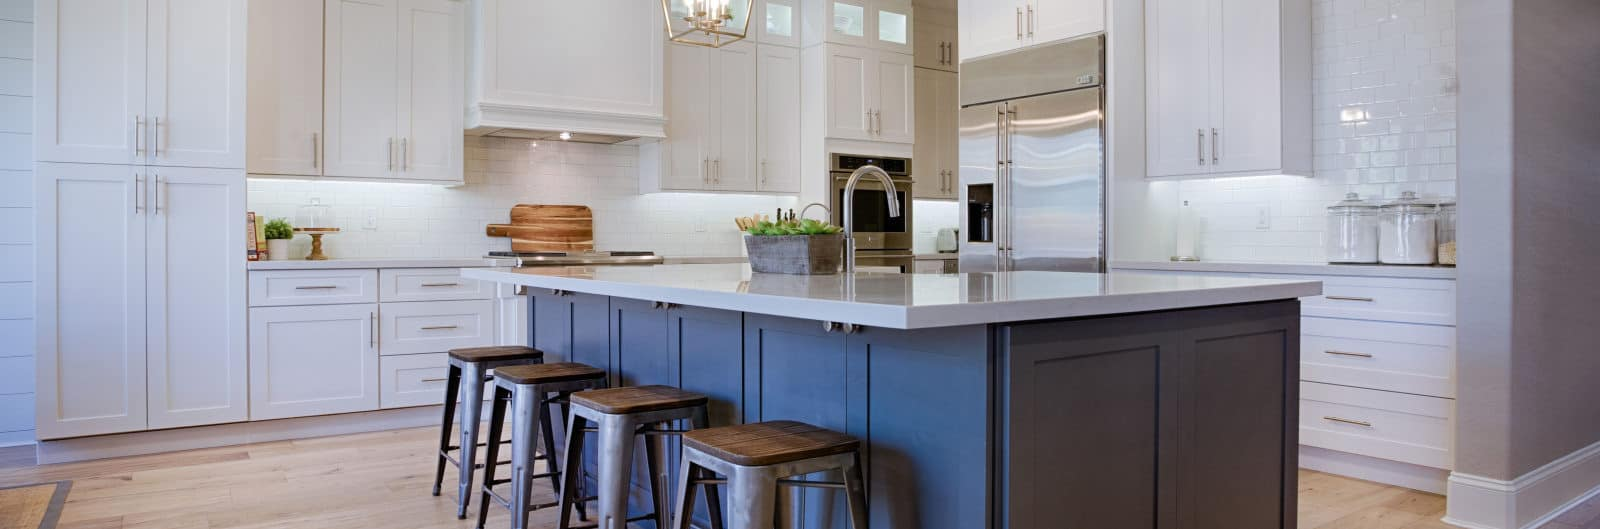 kitchen cabinets glendale